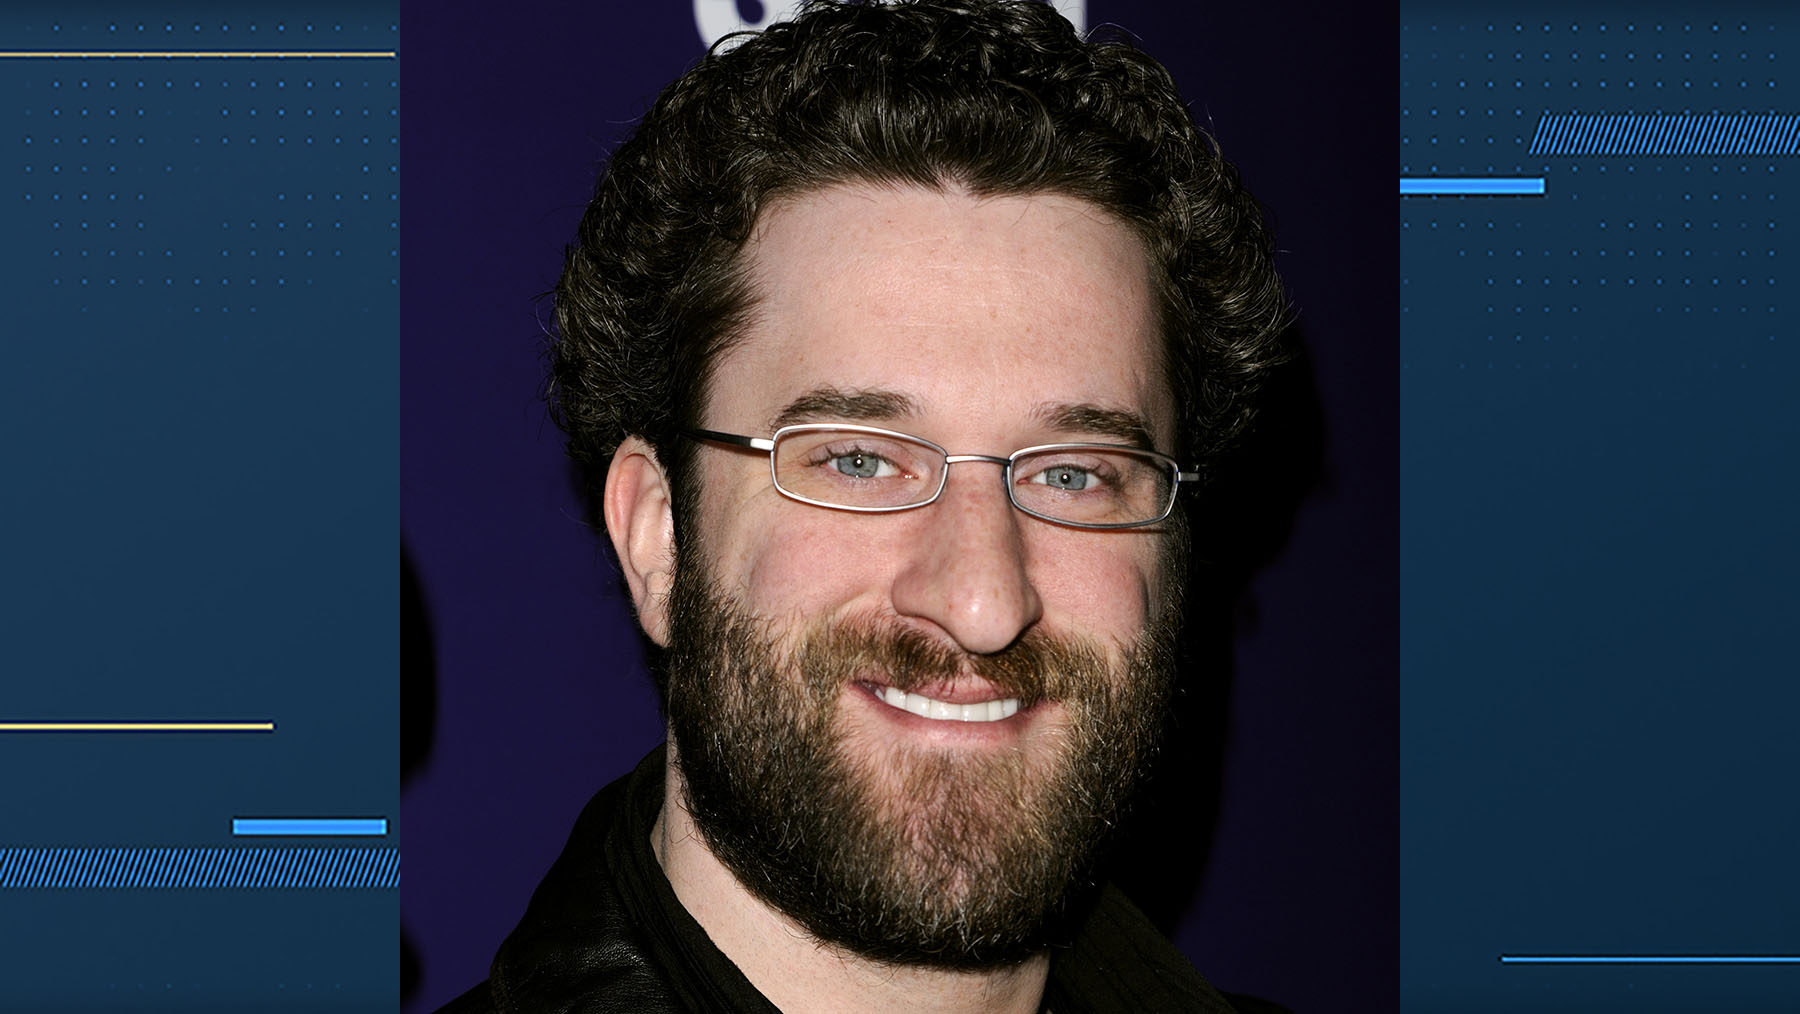 """Dustin Diamond, Known For Role as Screech in """"Saved by the Bell,"""" Dead at 44 Dustin-diamond-"""